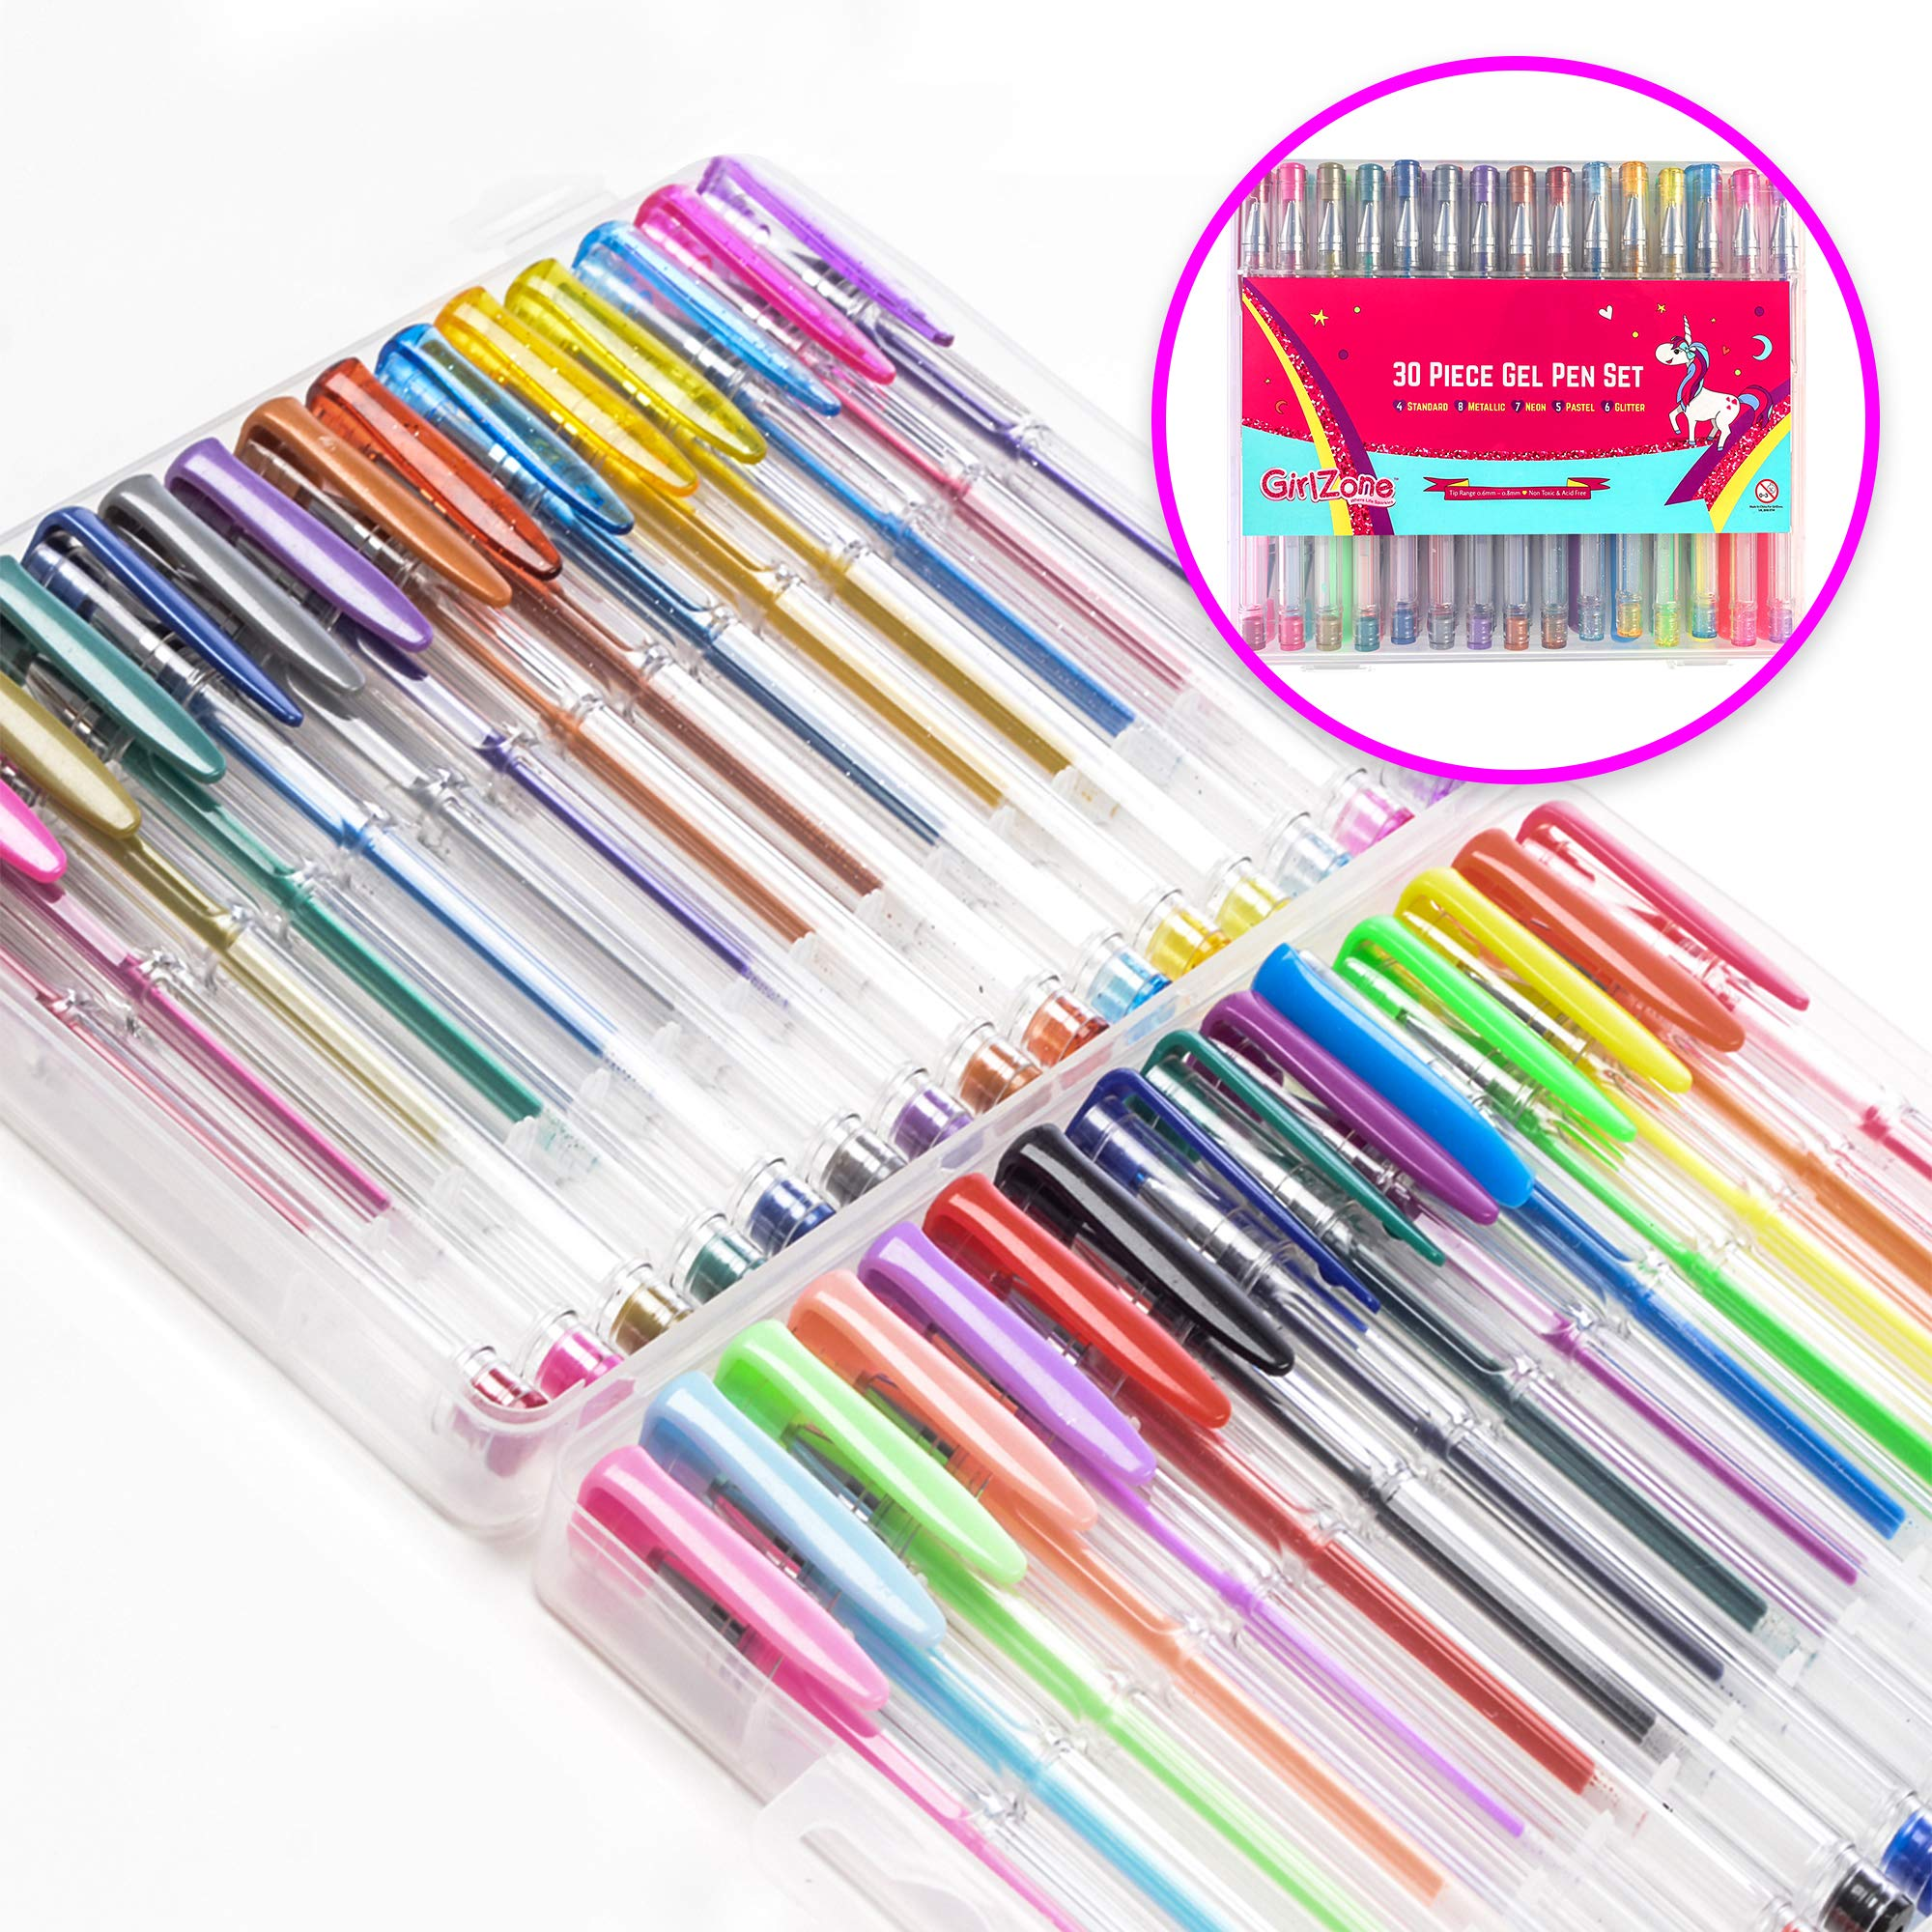 GirlZone: Colored Gel Pens Set for Girls, Ideal Arts and Crafts Kit, Great Gifts For Girls